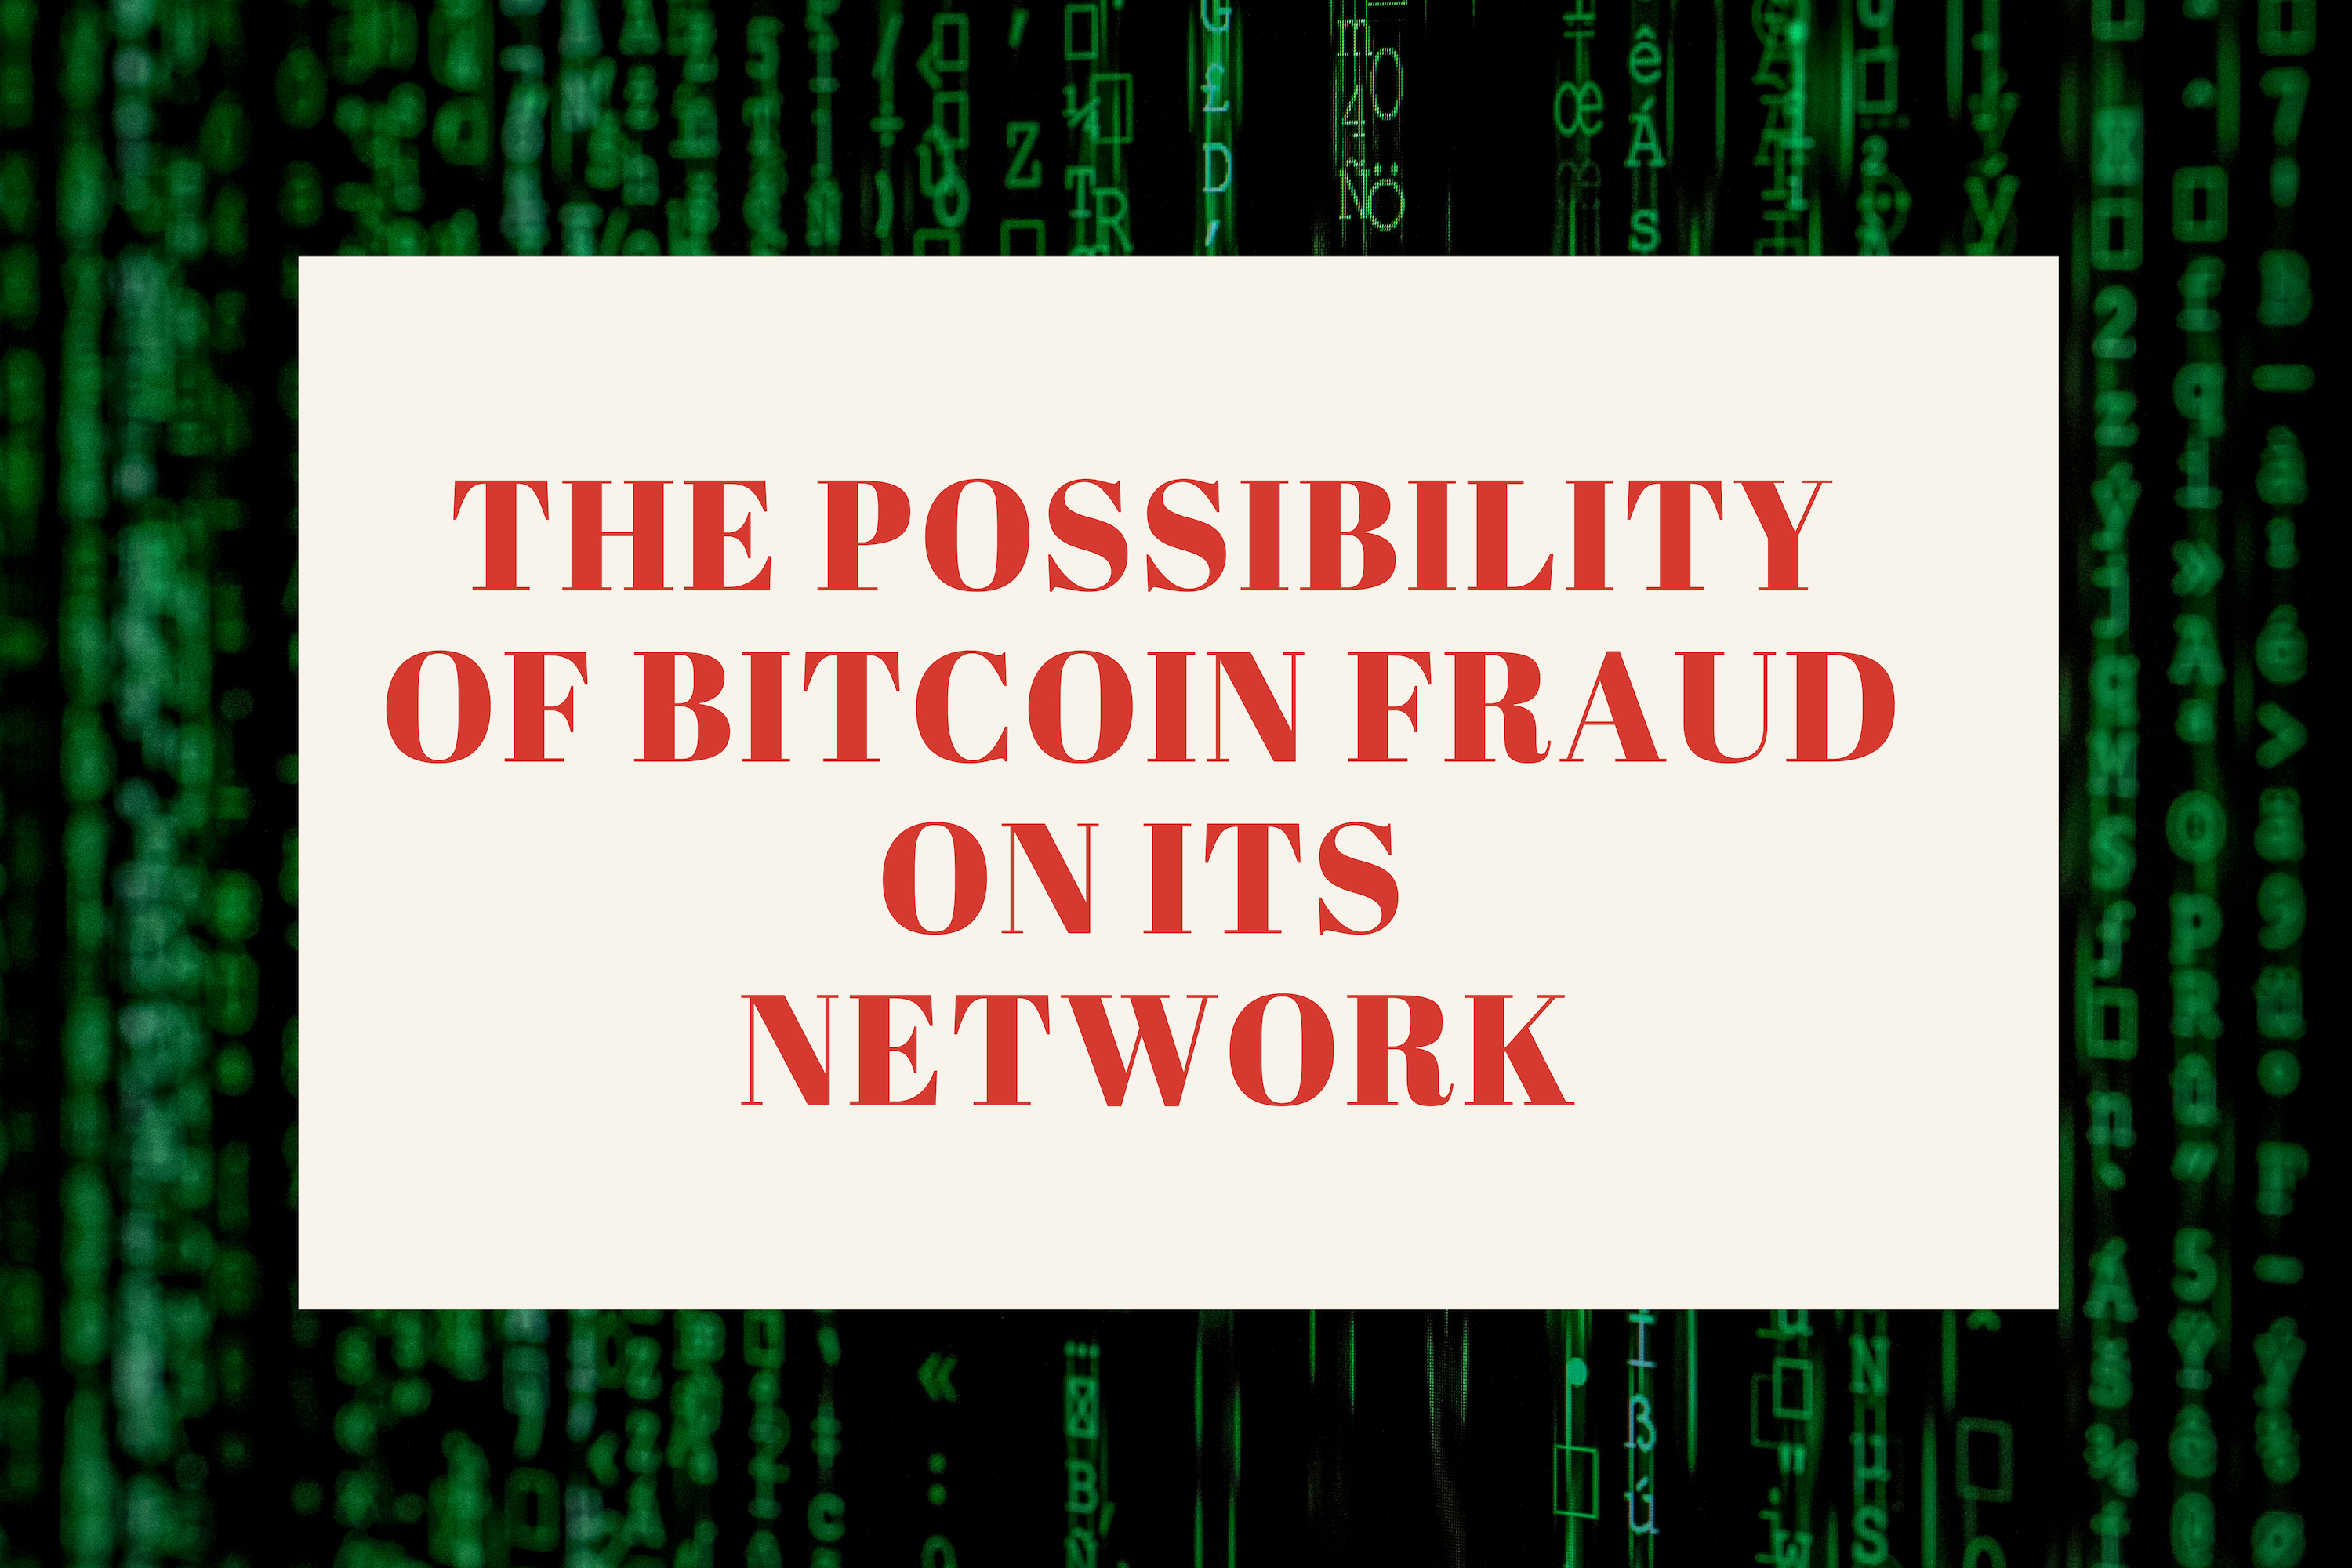 The Possibility of Bitcoin Fraud on Its Network